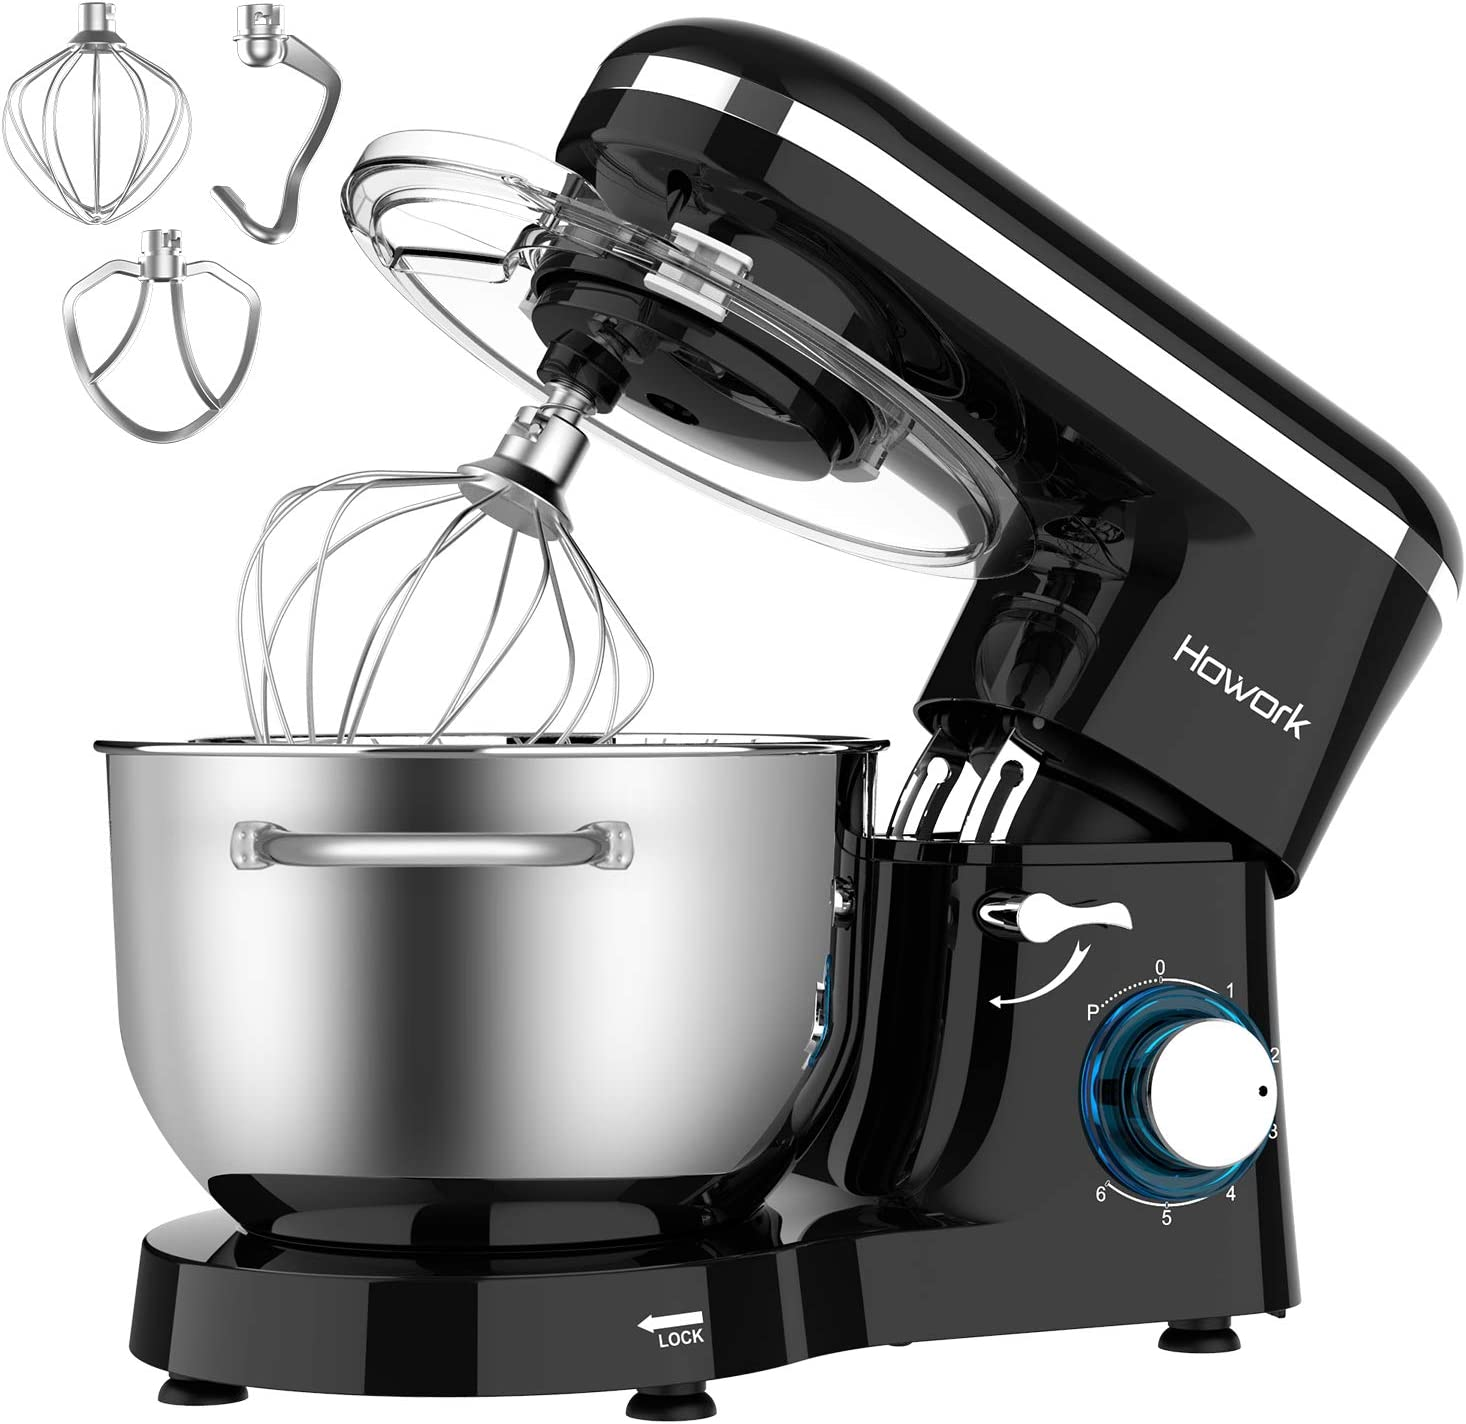 HOWORK Stand Mixer, 660W Electric Kitchen Food Mixer With 6.55 Quart Stainless Steel Bowl, 6-Speed Control Dough Mixer With Dough Hook, Whisk, Beater